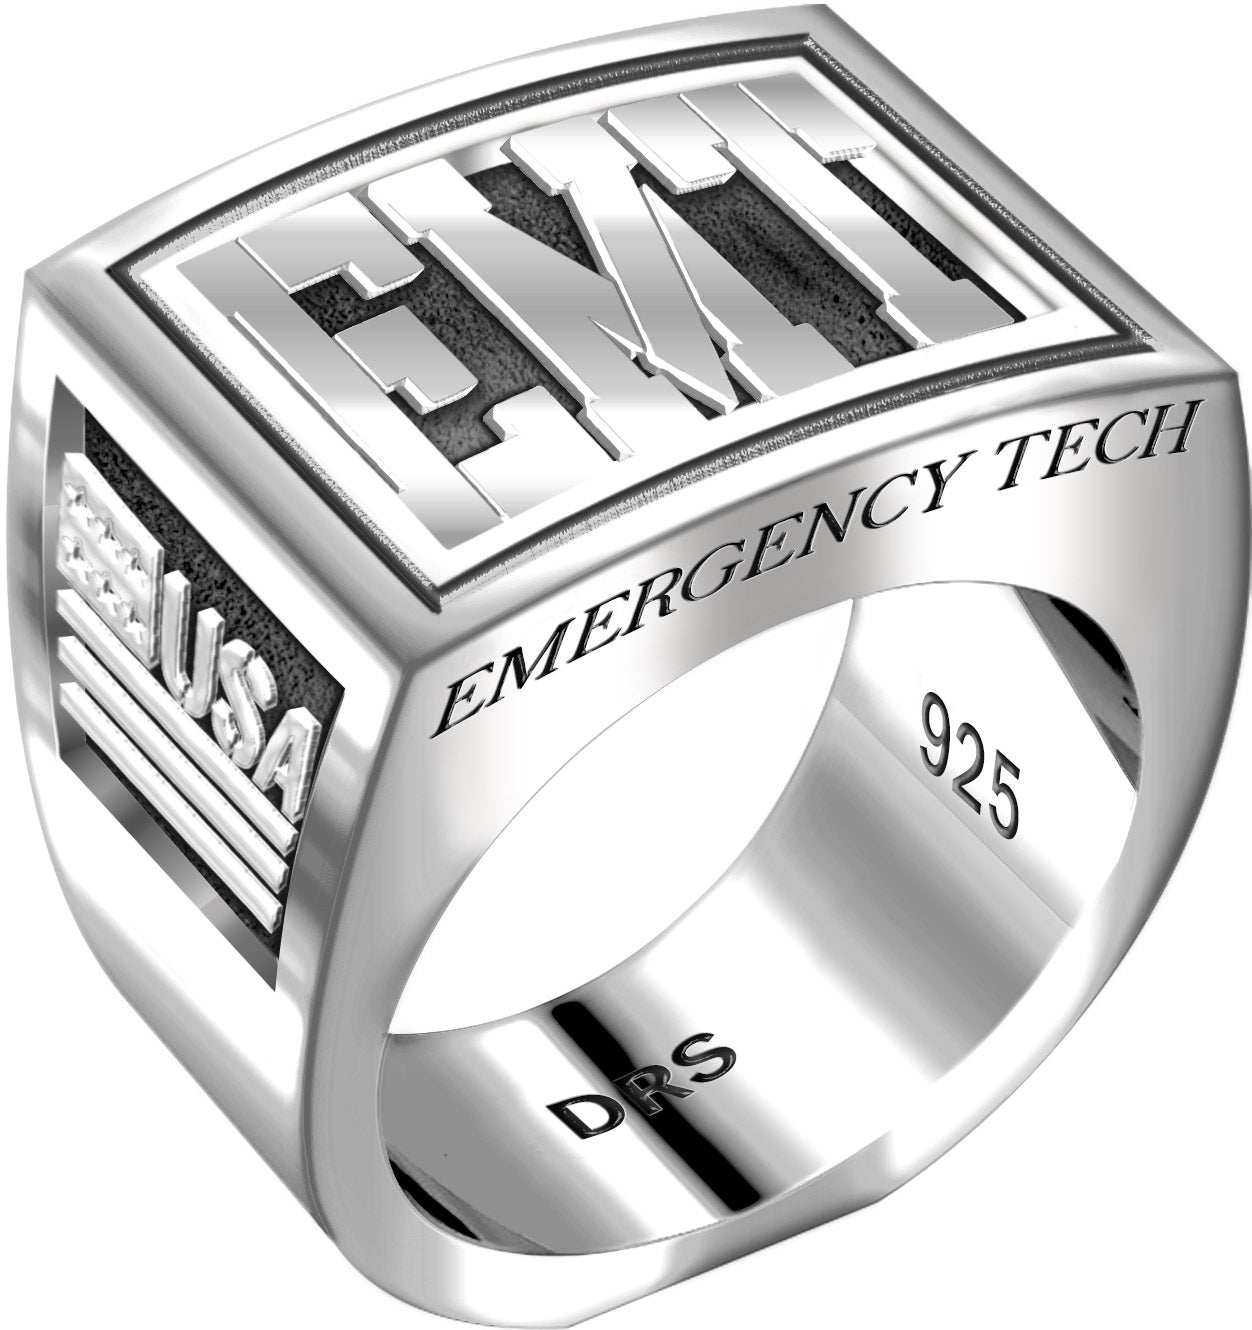 Men's Heavy 0.925 Sterling Silver EMT Ring Band